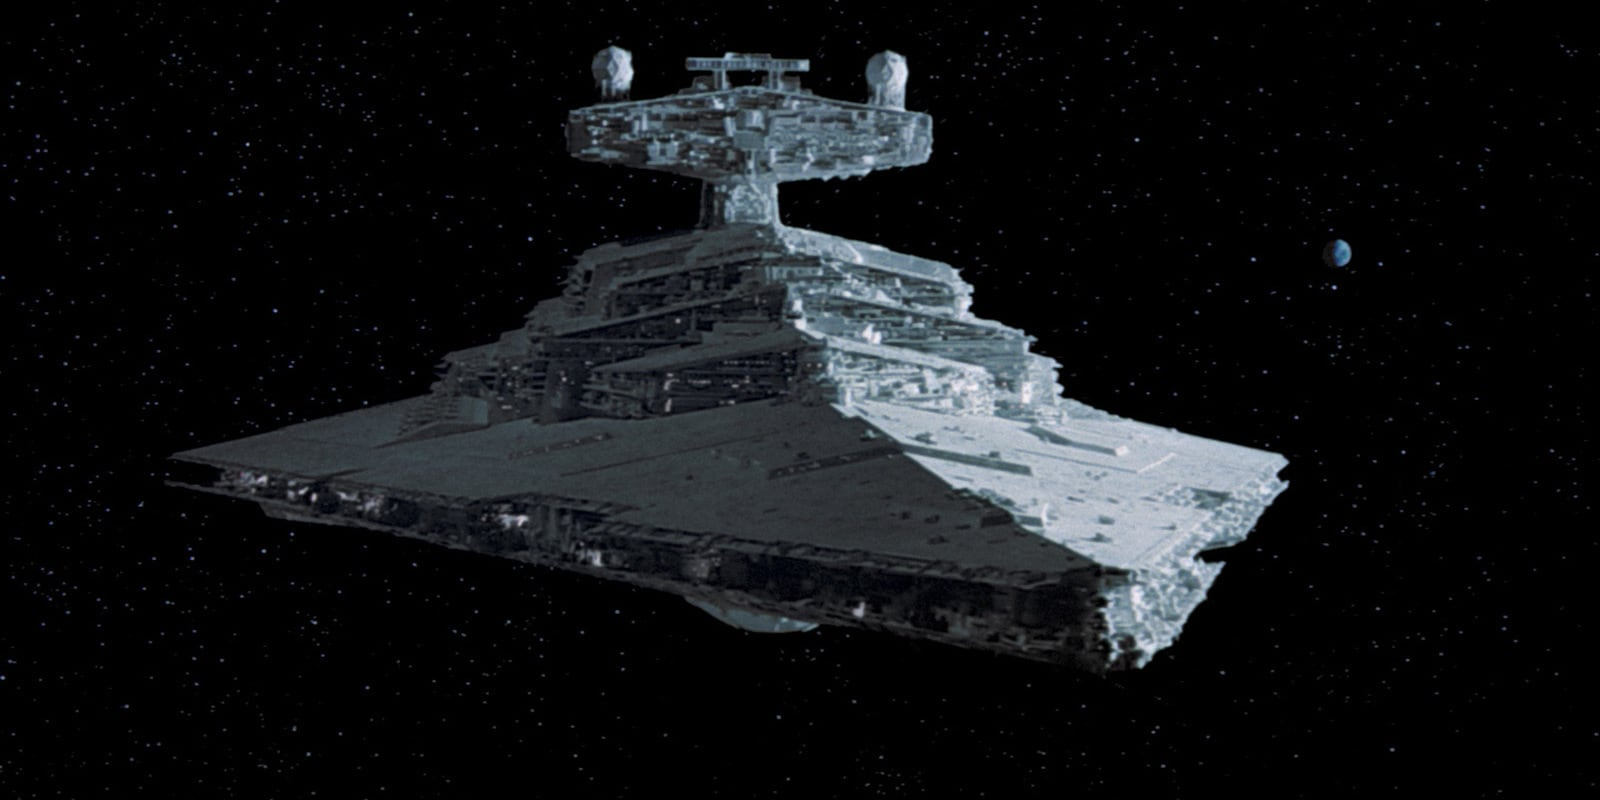 Imperial star destroyer - Lego croiseur imperial ...